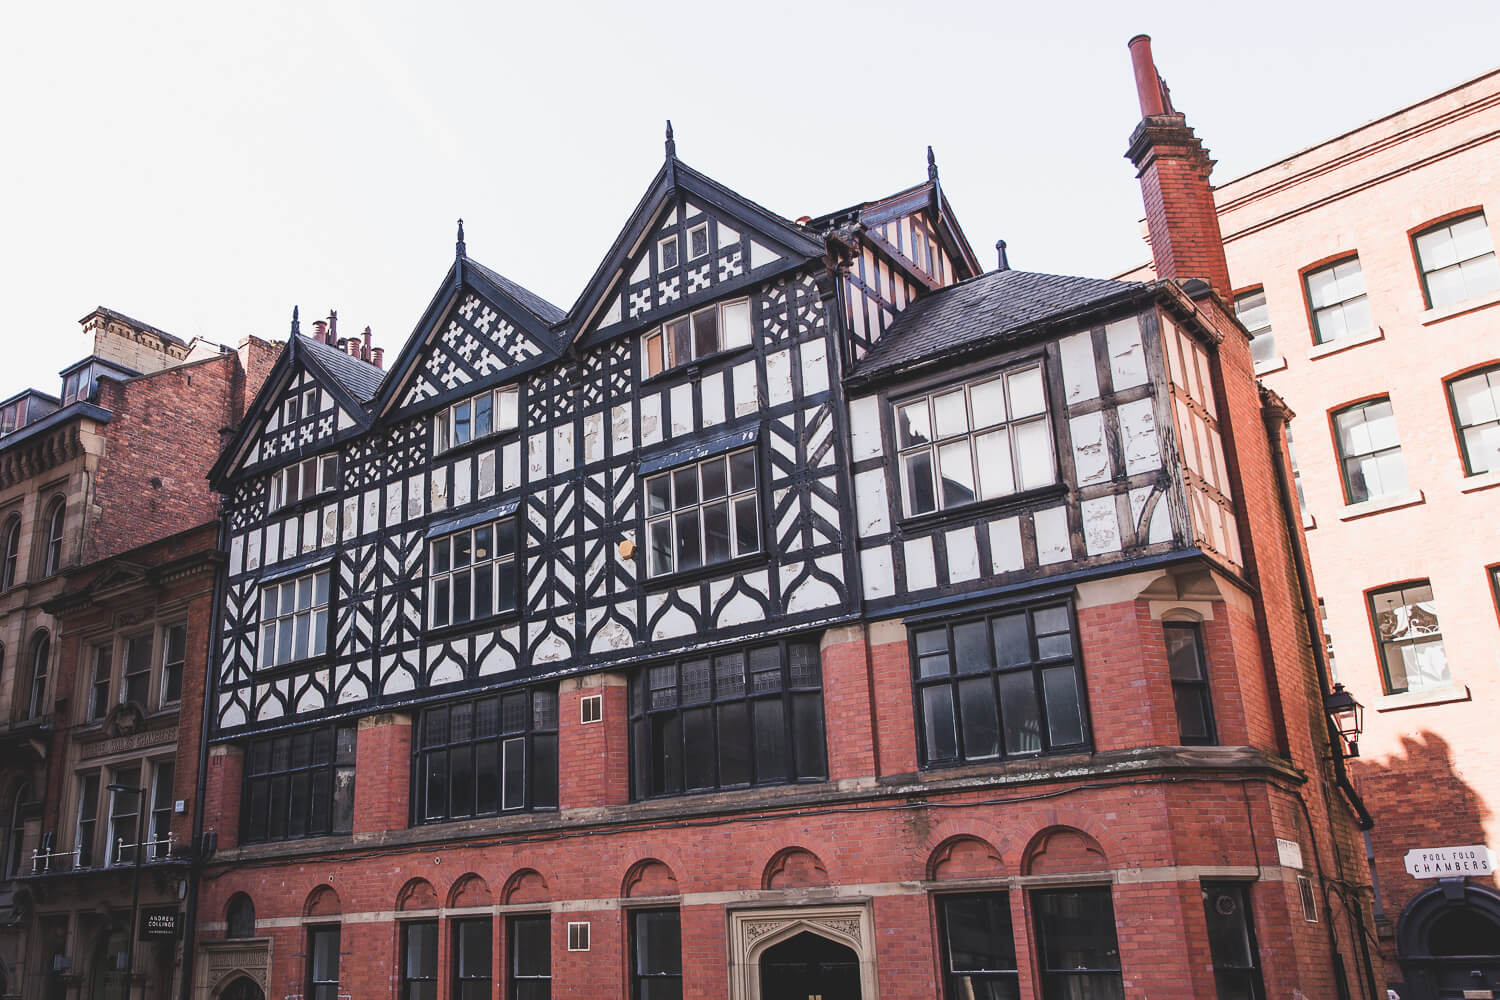 Half-Timbered Buildings in Manchester, UK